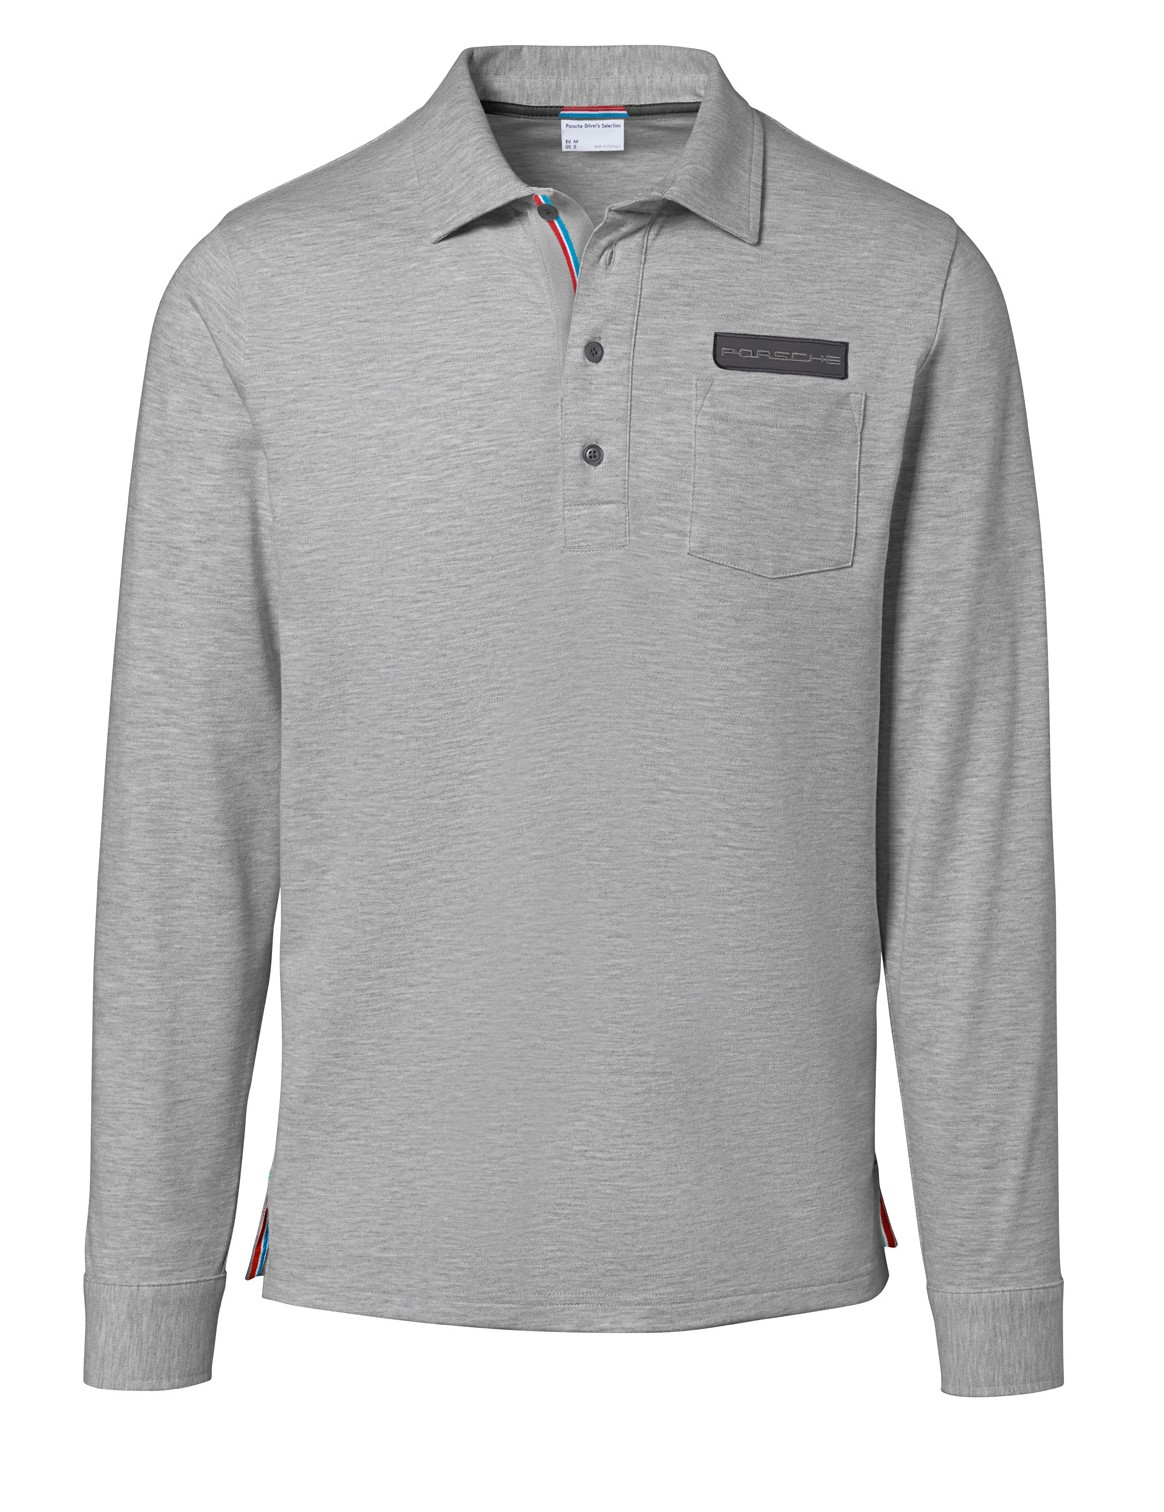 Men's Long Sleeve Polo Shirt - Classic Collection